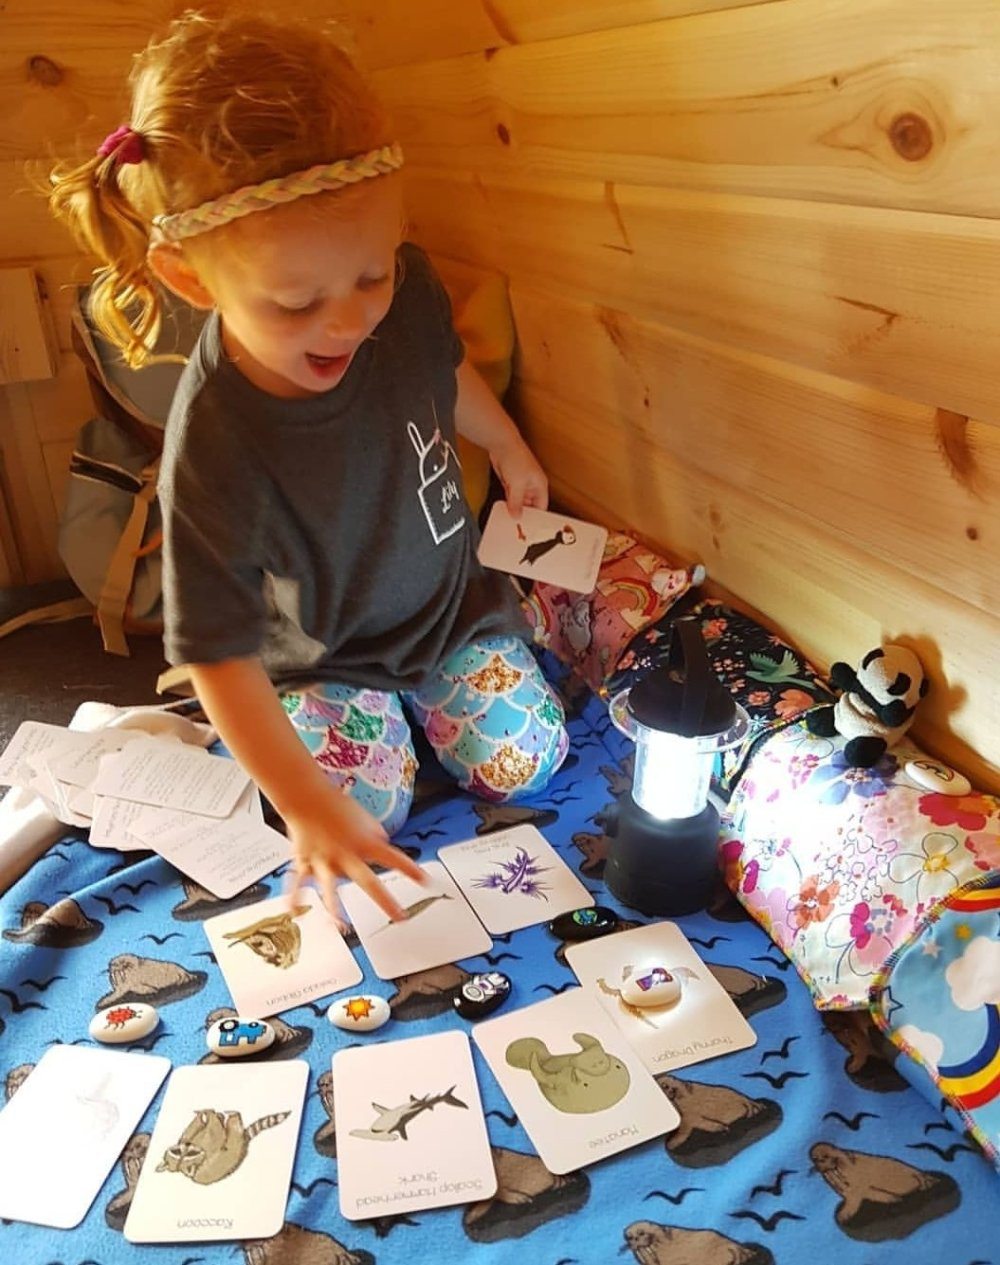 Her Amazing Animals cards and Imagistones are camping staples!